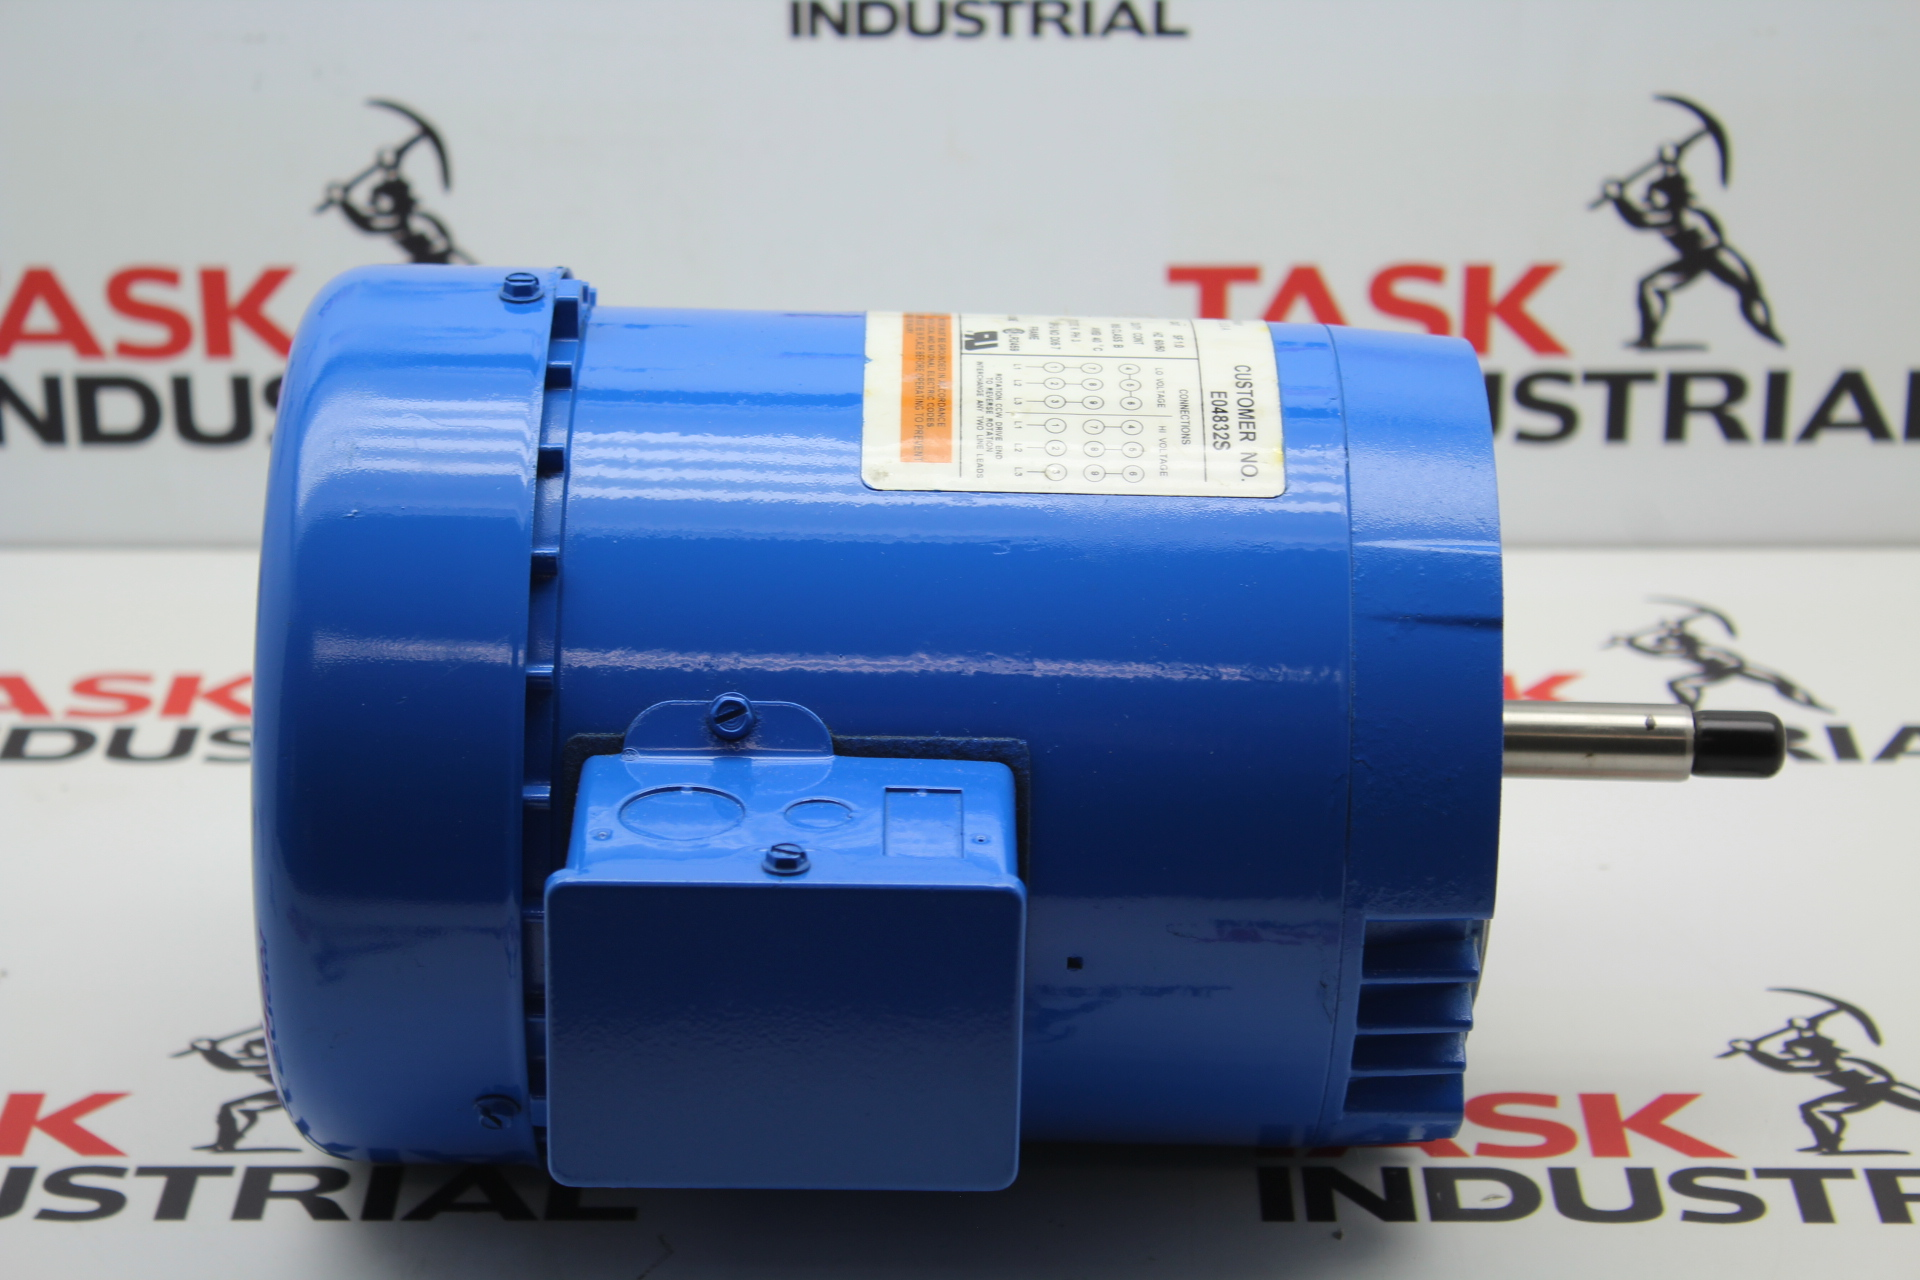 Emerson electric motor model p63fdb 4032 1 2 hp 1725 rpm for Emerson electric motor parts